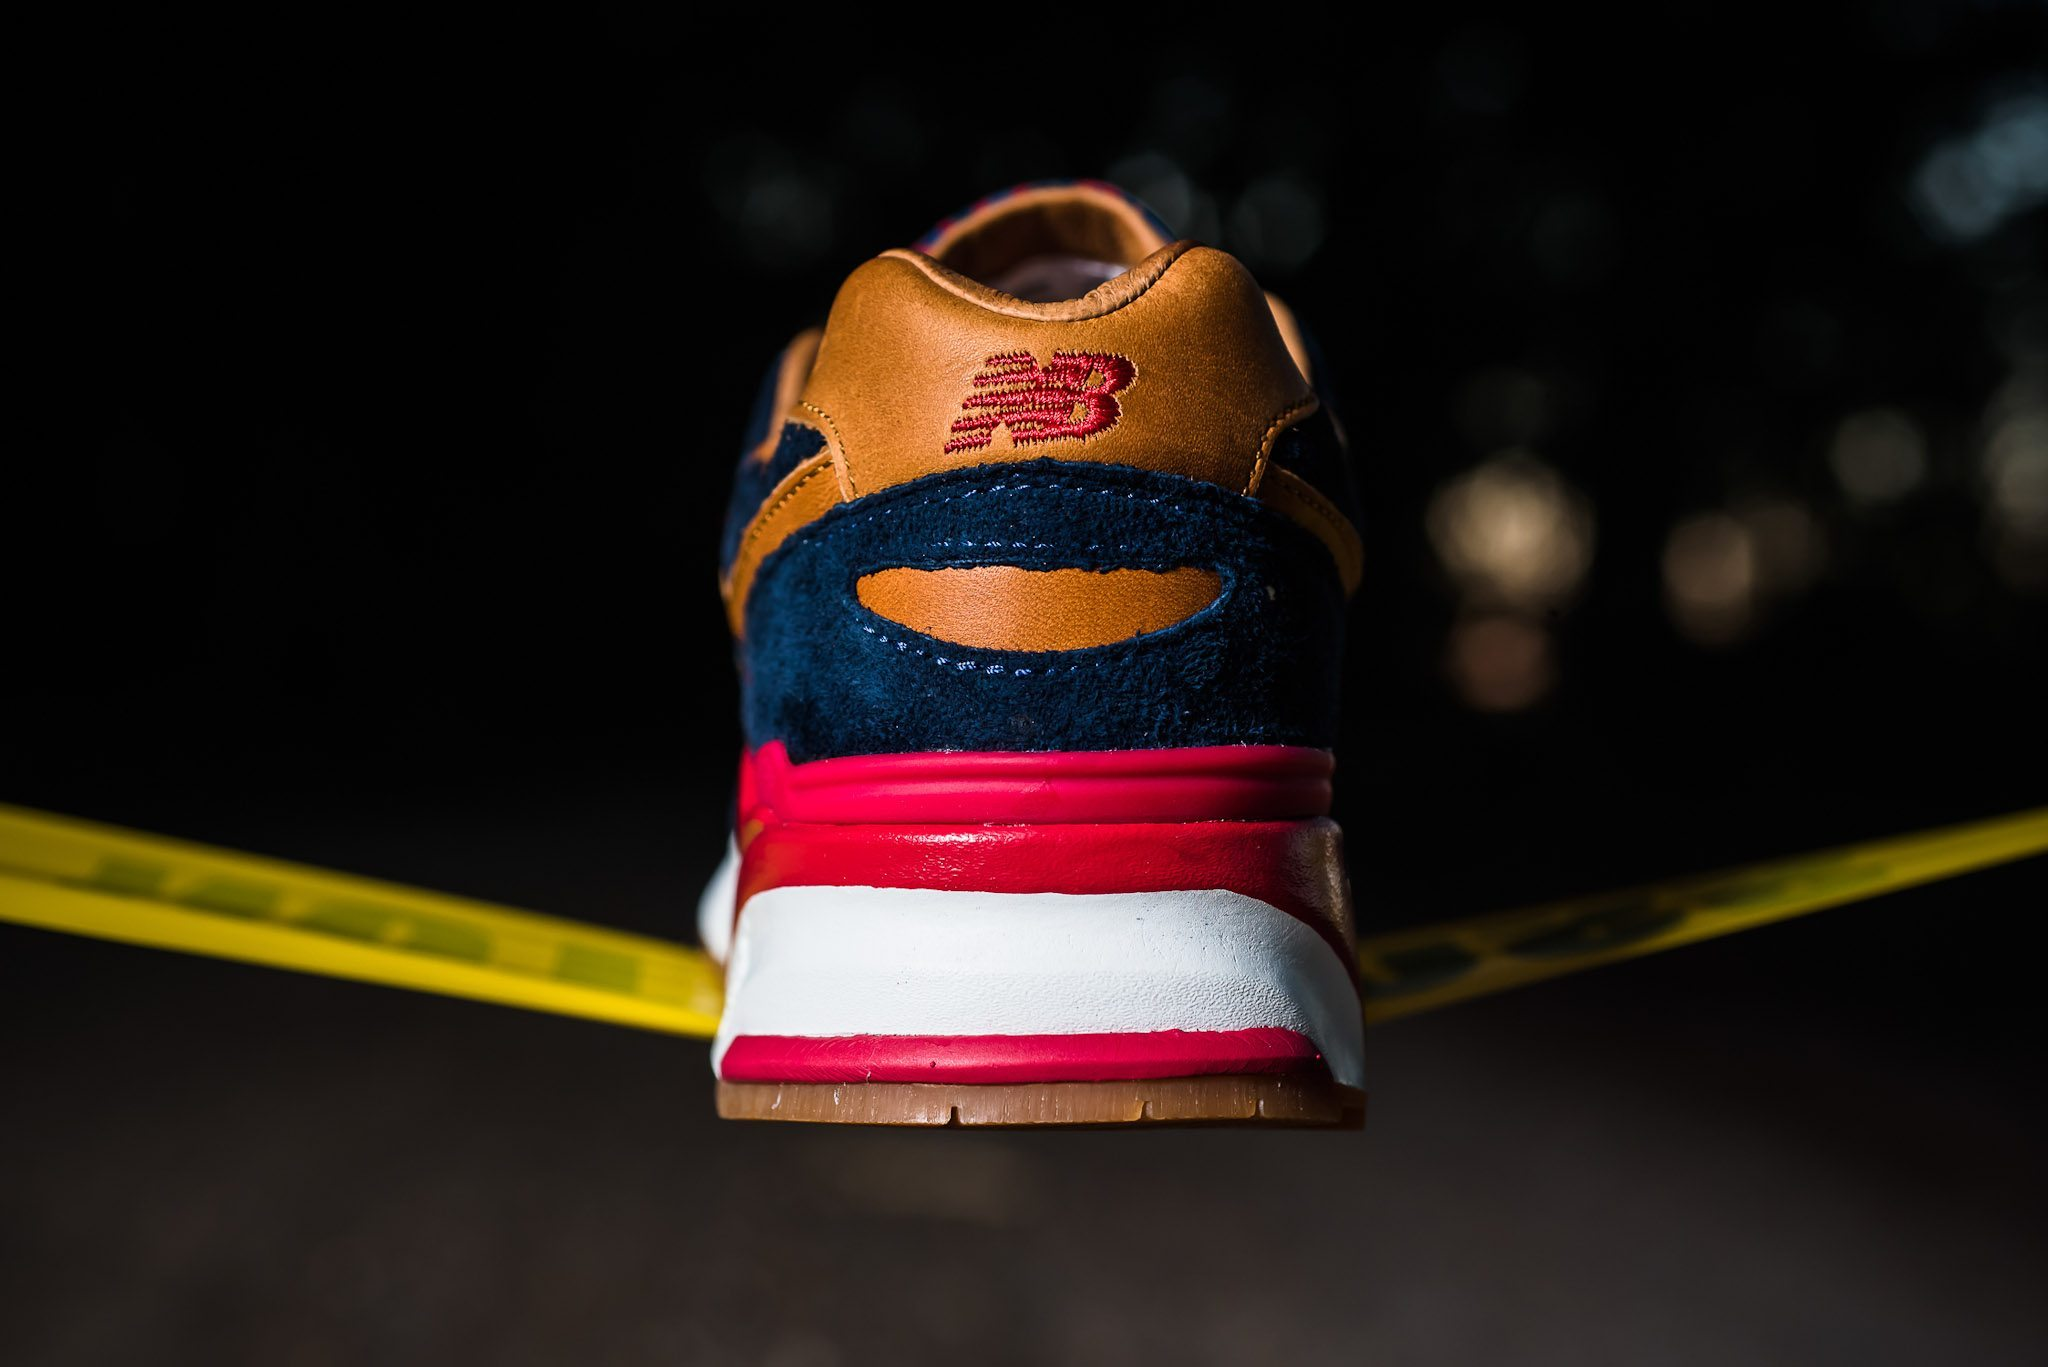 Sneaker Politics x New Balance Case 999 9